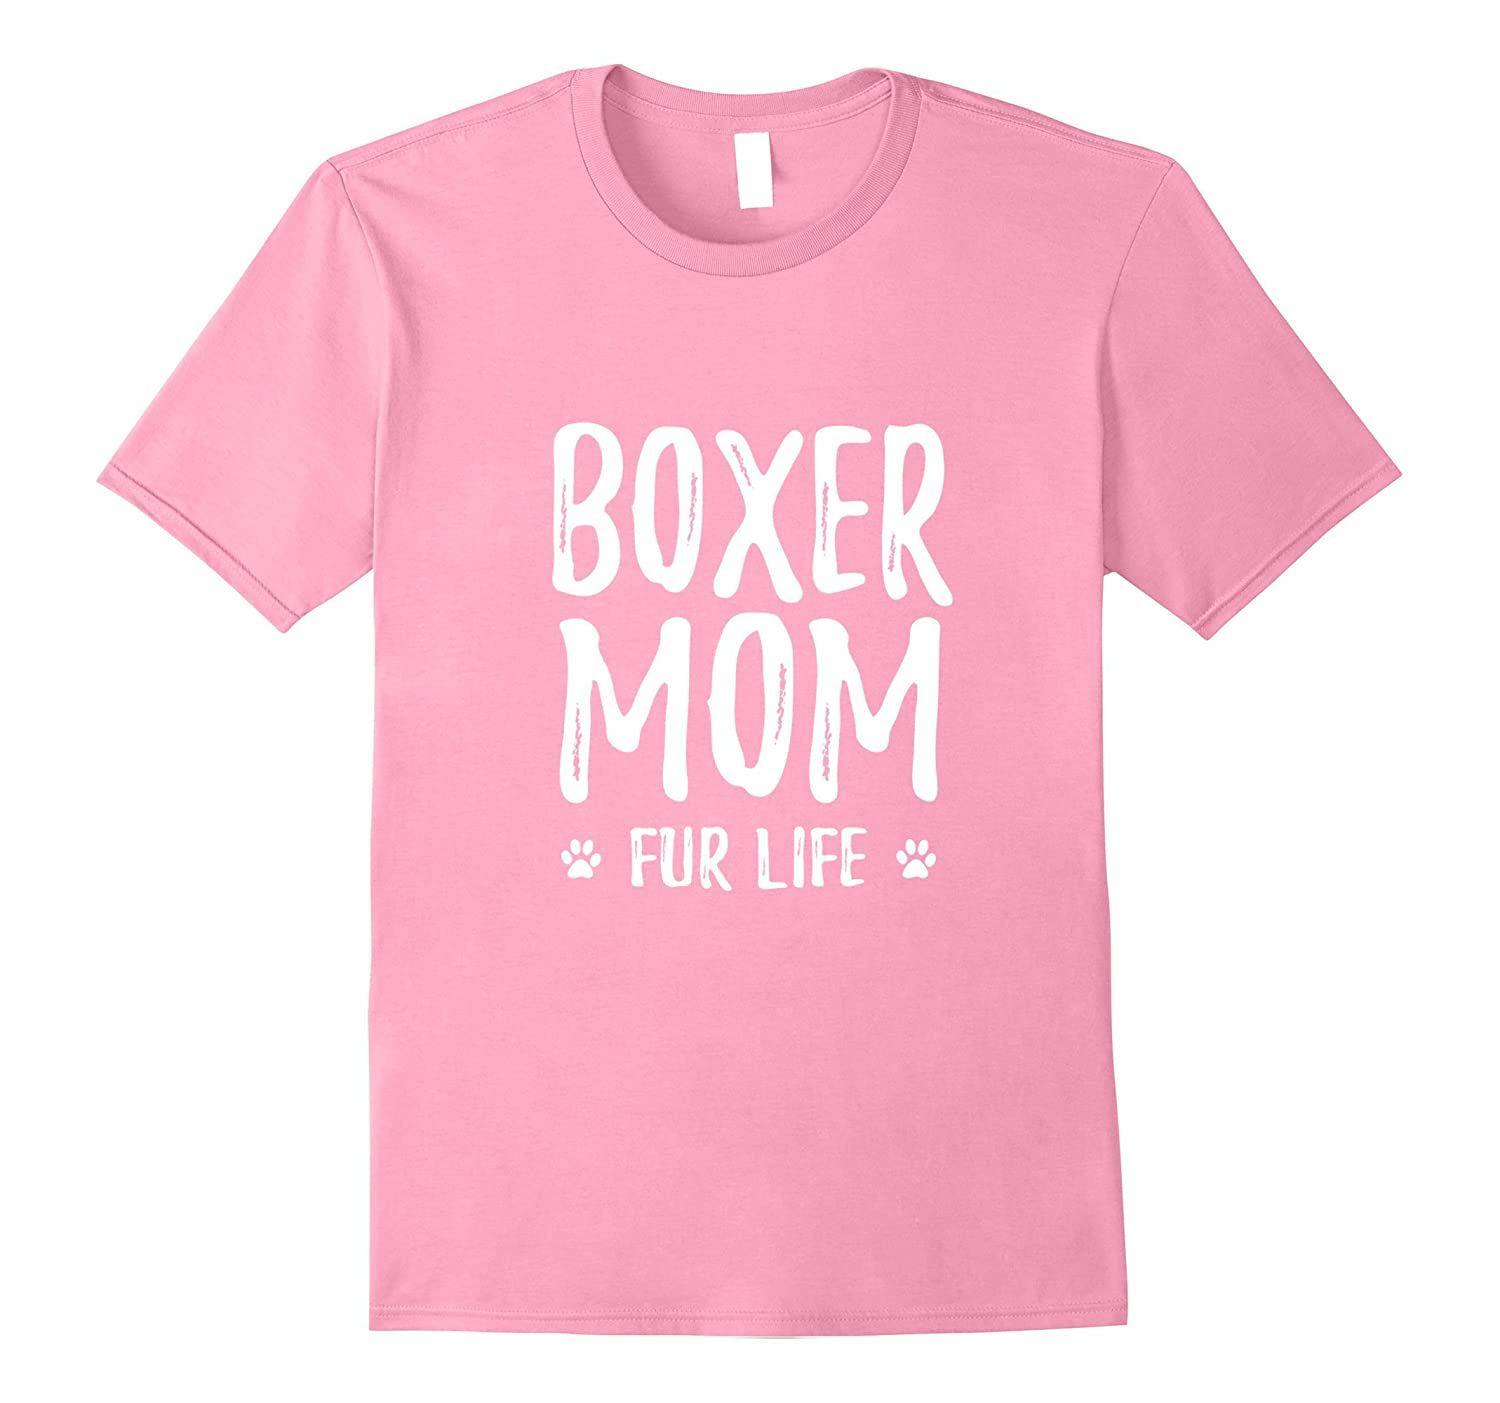 d464c6a8 Boxer Mom Fur Life T-Shirt for Boxer Dog Mom-ANZ ⋆ Anztshirt